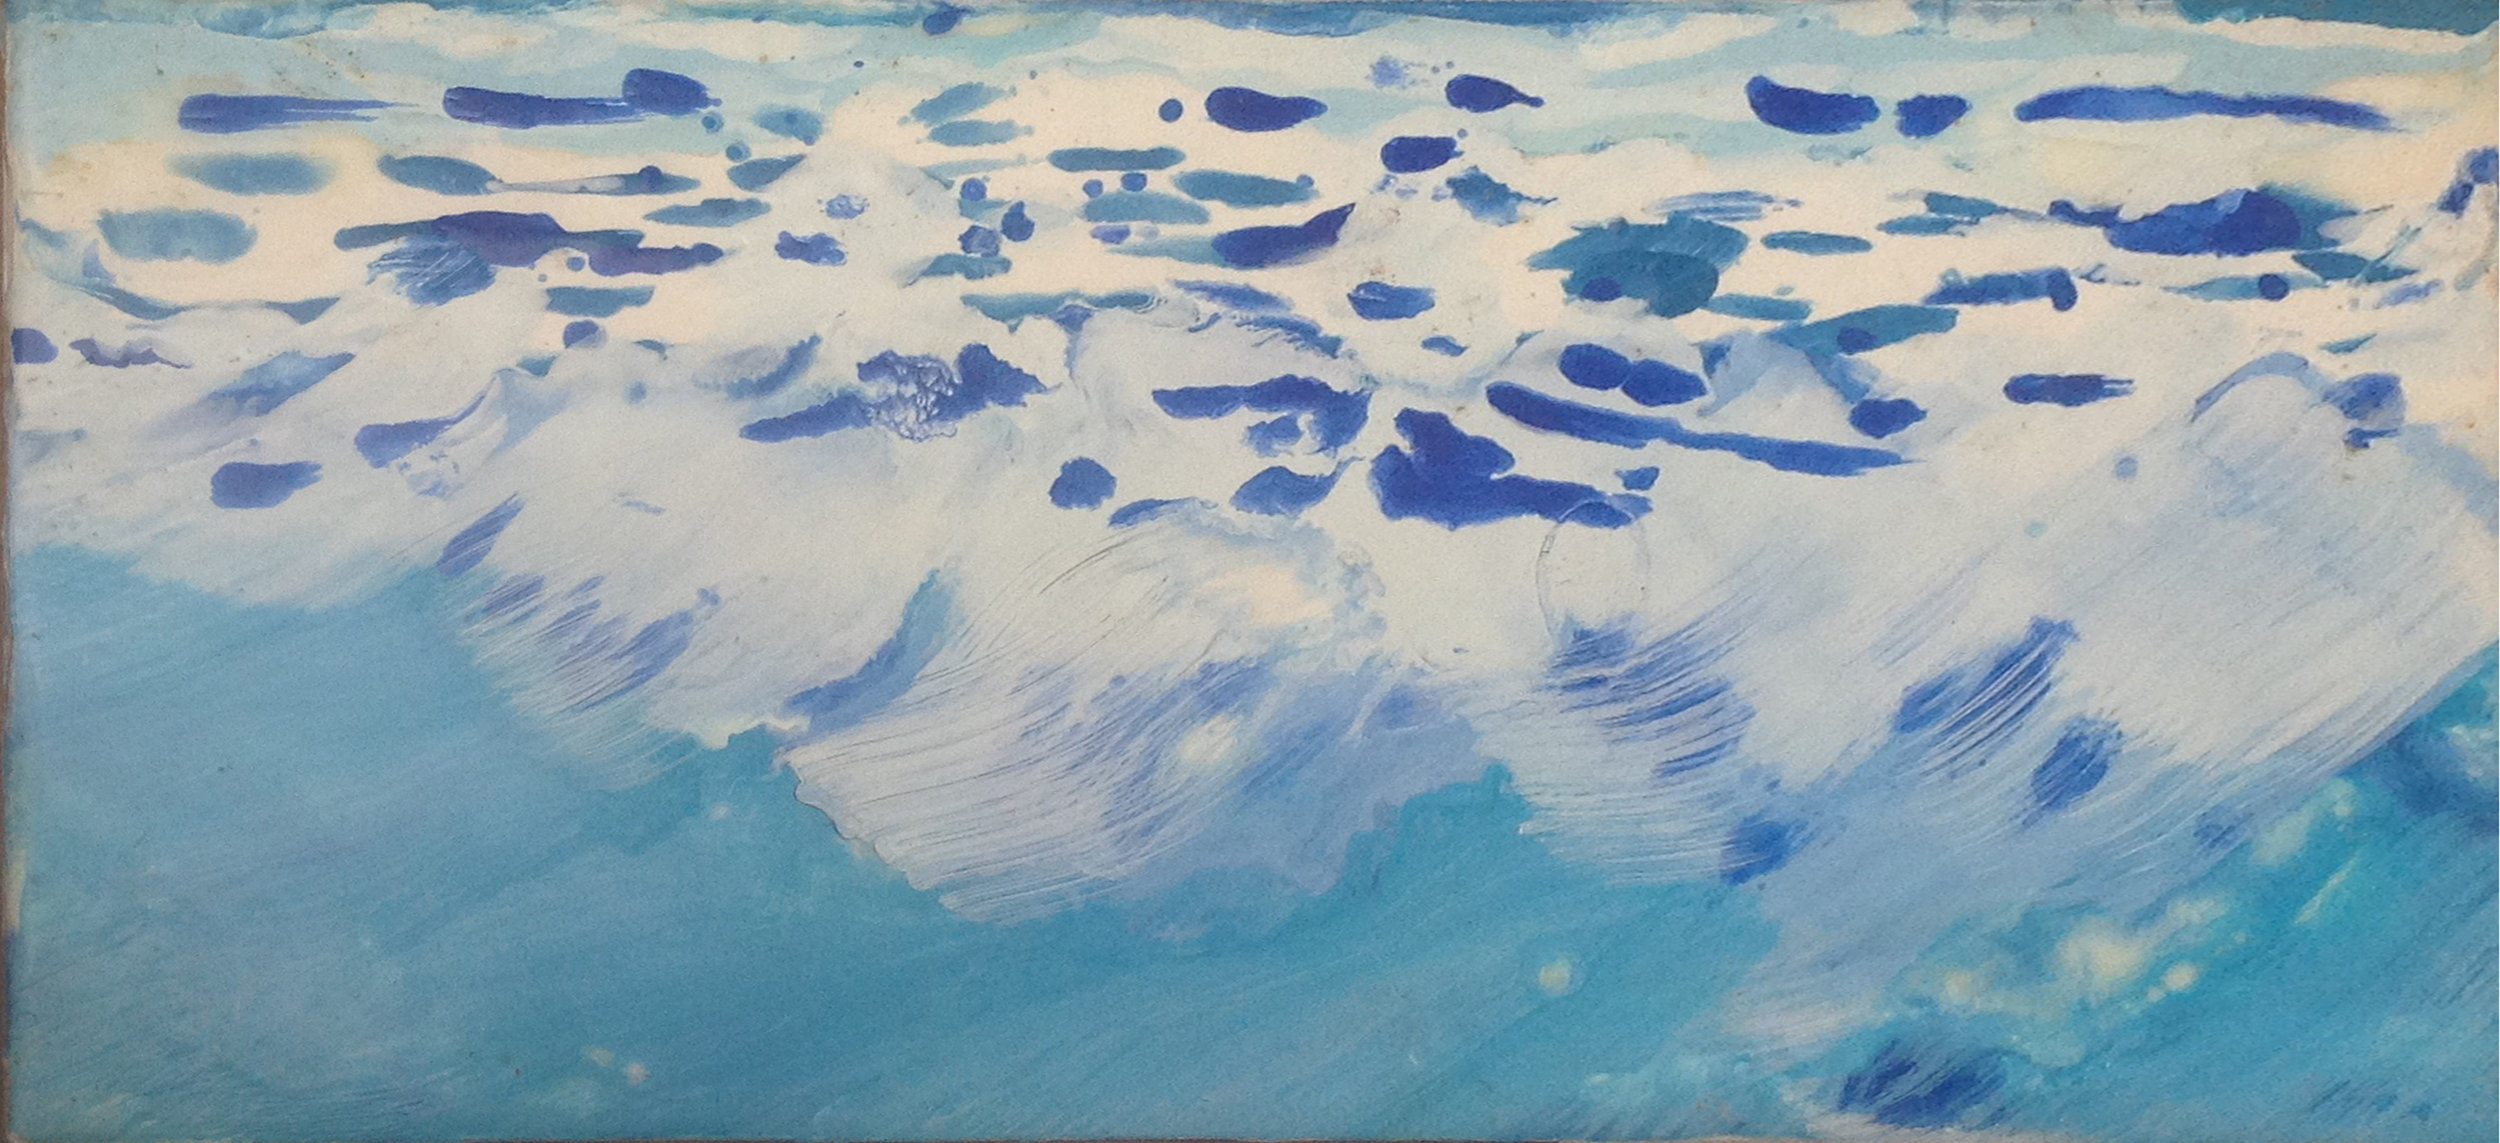 Ocean - Encaustic - 6 x 12 - Collection of Abraham Reybold